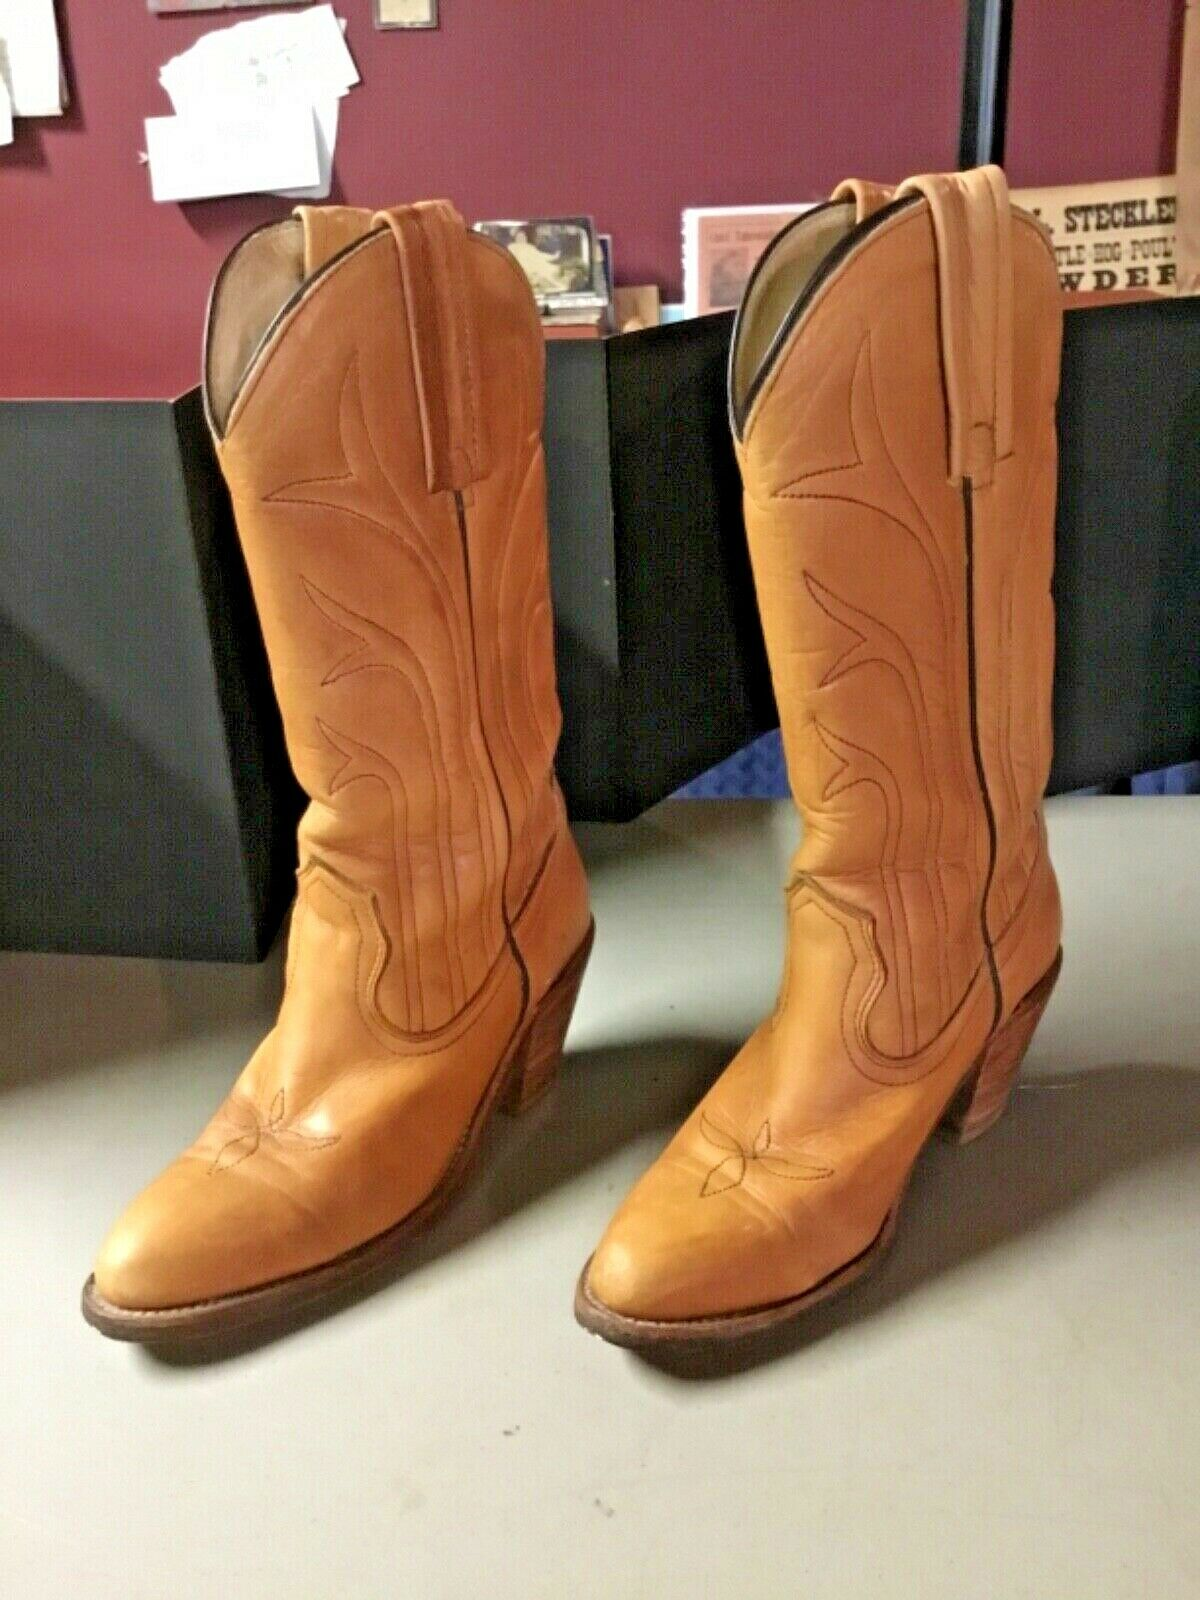 Vintage FRYE Leather Cowboy Boots, Size 5 1/2 B, MADE IN USA! Very Good Cond!